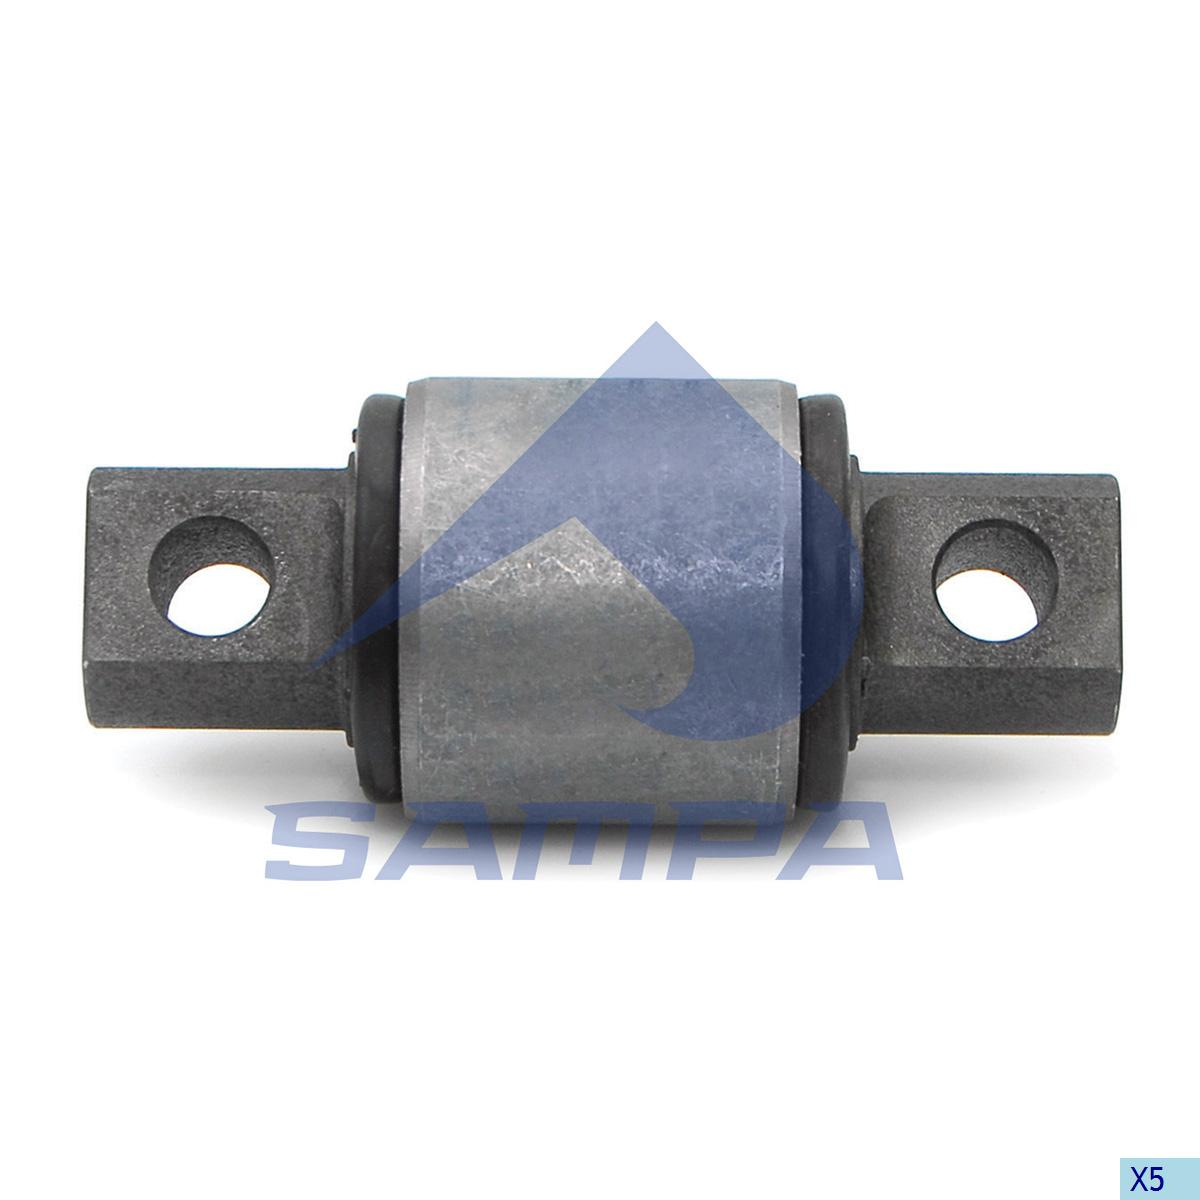 Rubber Bushing, Axle Rod, Freightliner, Suspension